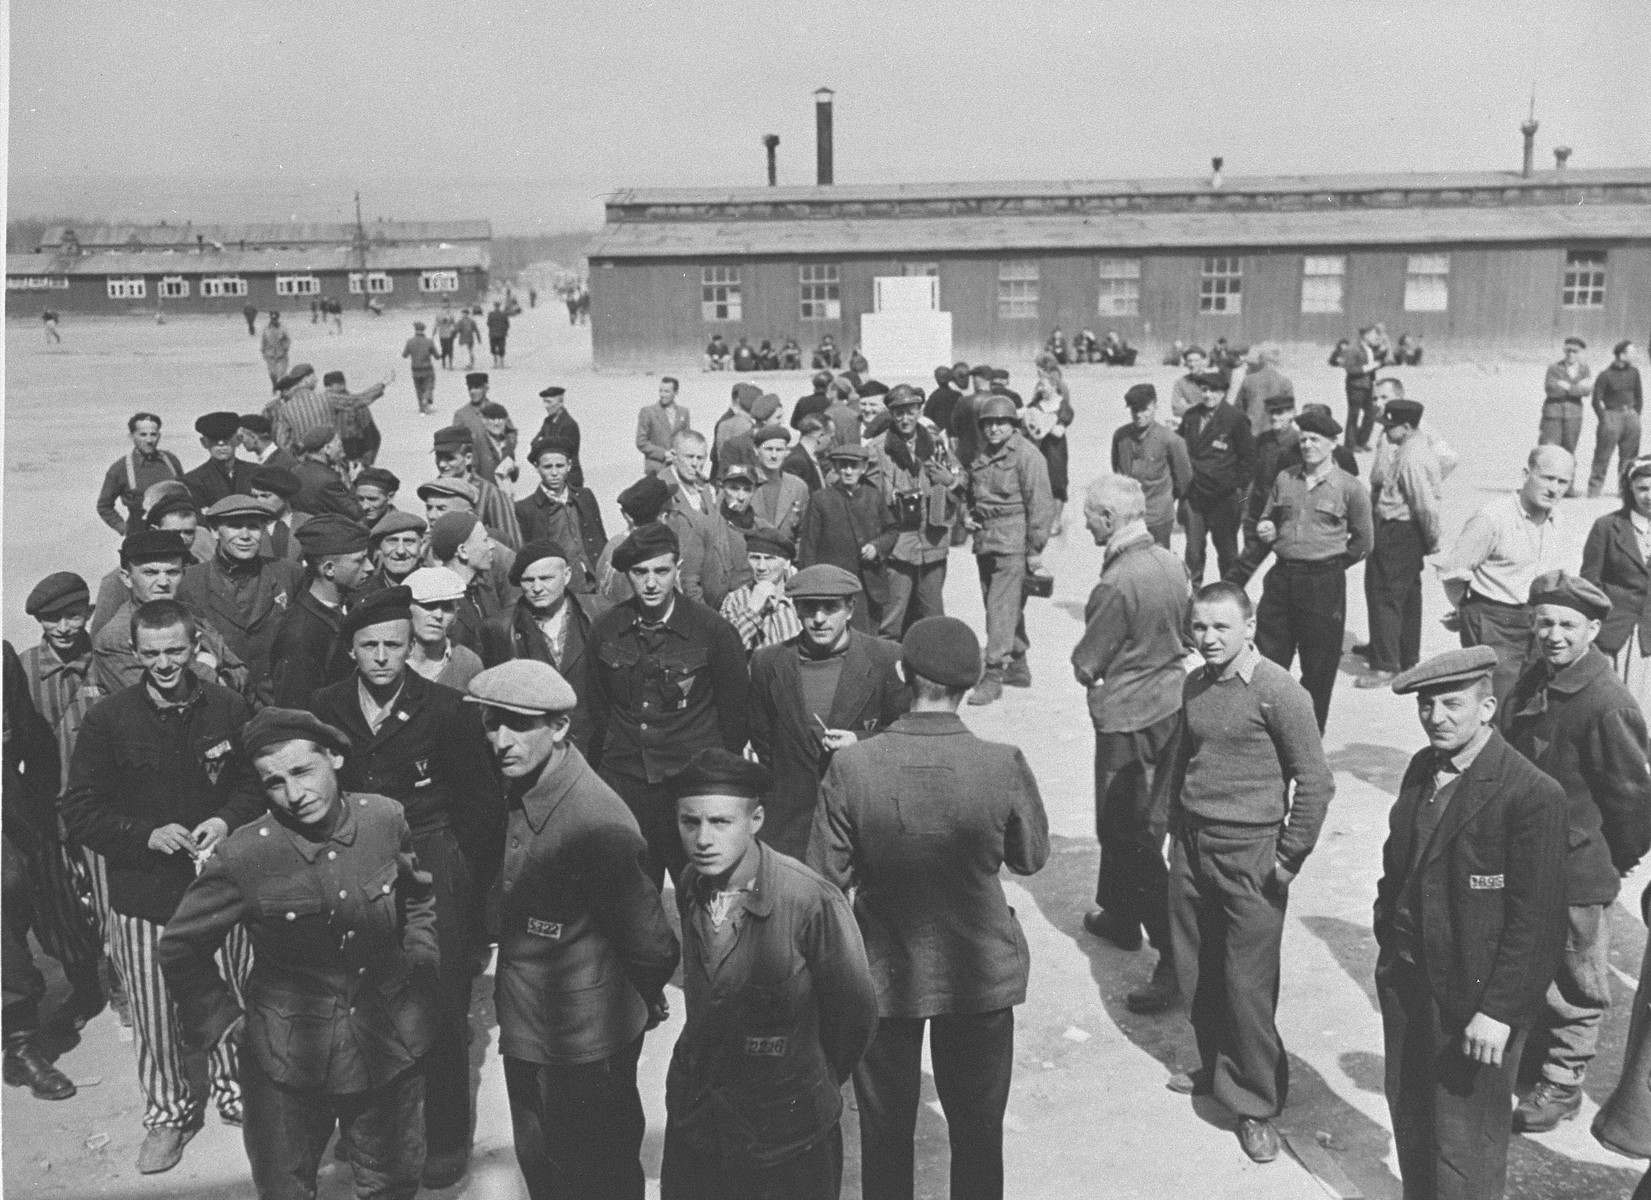 Survivors congregate in the central compound of Buchenwald along with American soldiers and journalists during an official tour of the liberated camp by an international group of radio commentators.